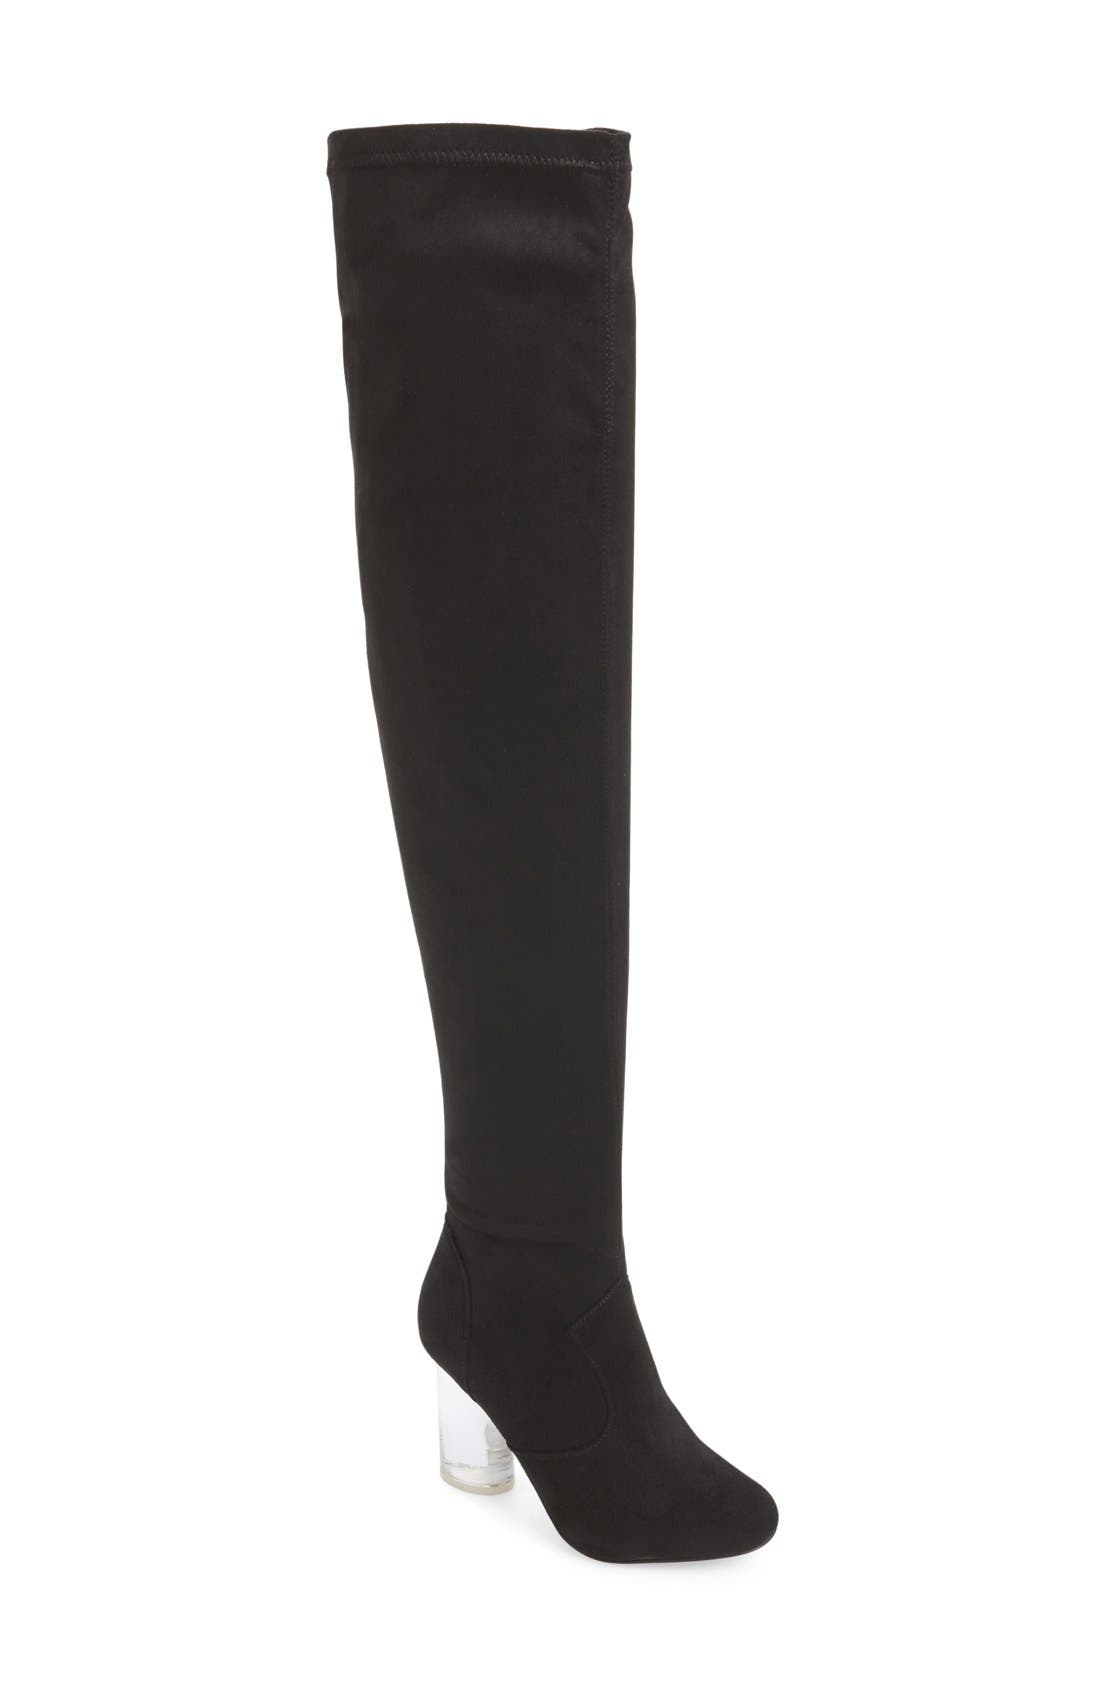 Main Image - Jeffrey Campbell 'Paradox' Over the Knee Boot (Women)